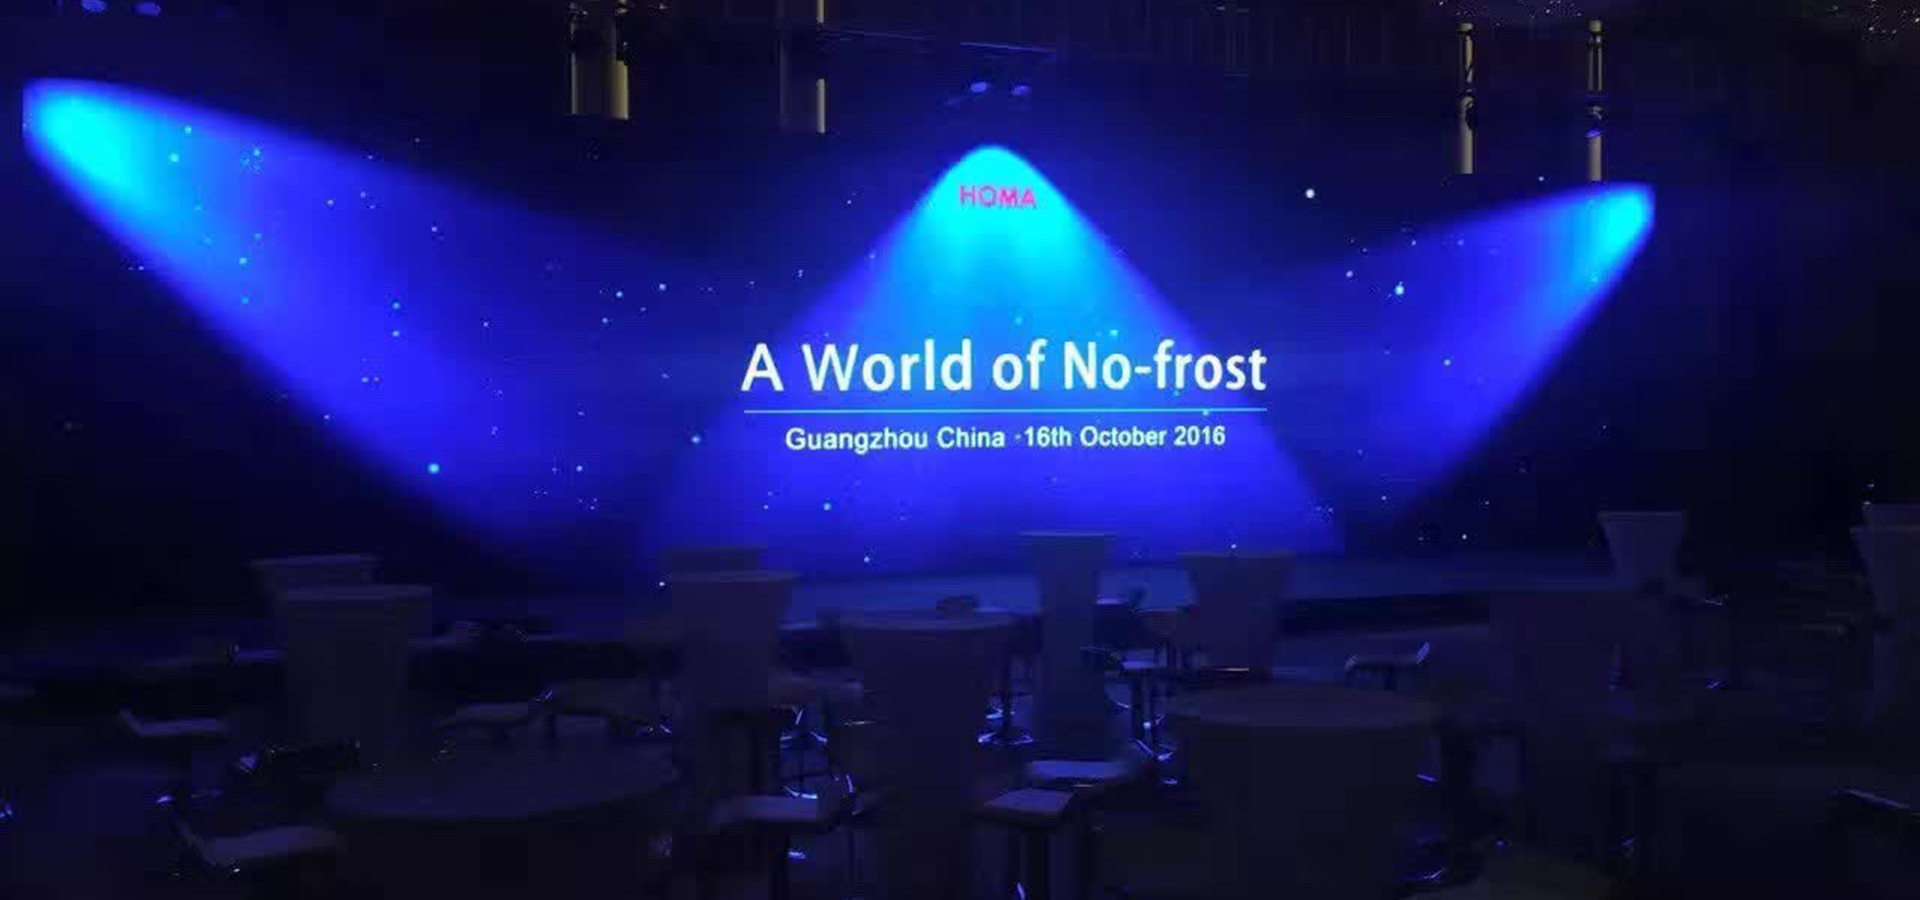 A world of No-frost, Homa launched its new no-frost refrigerator